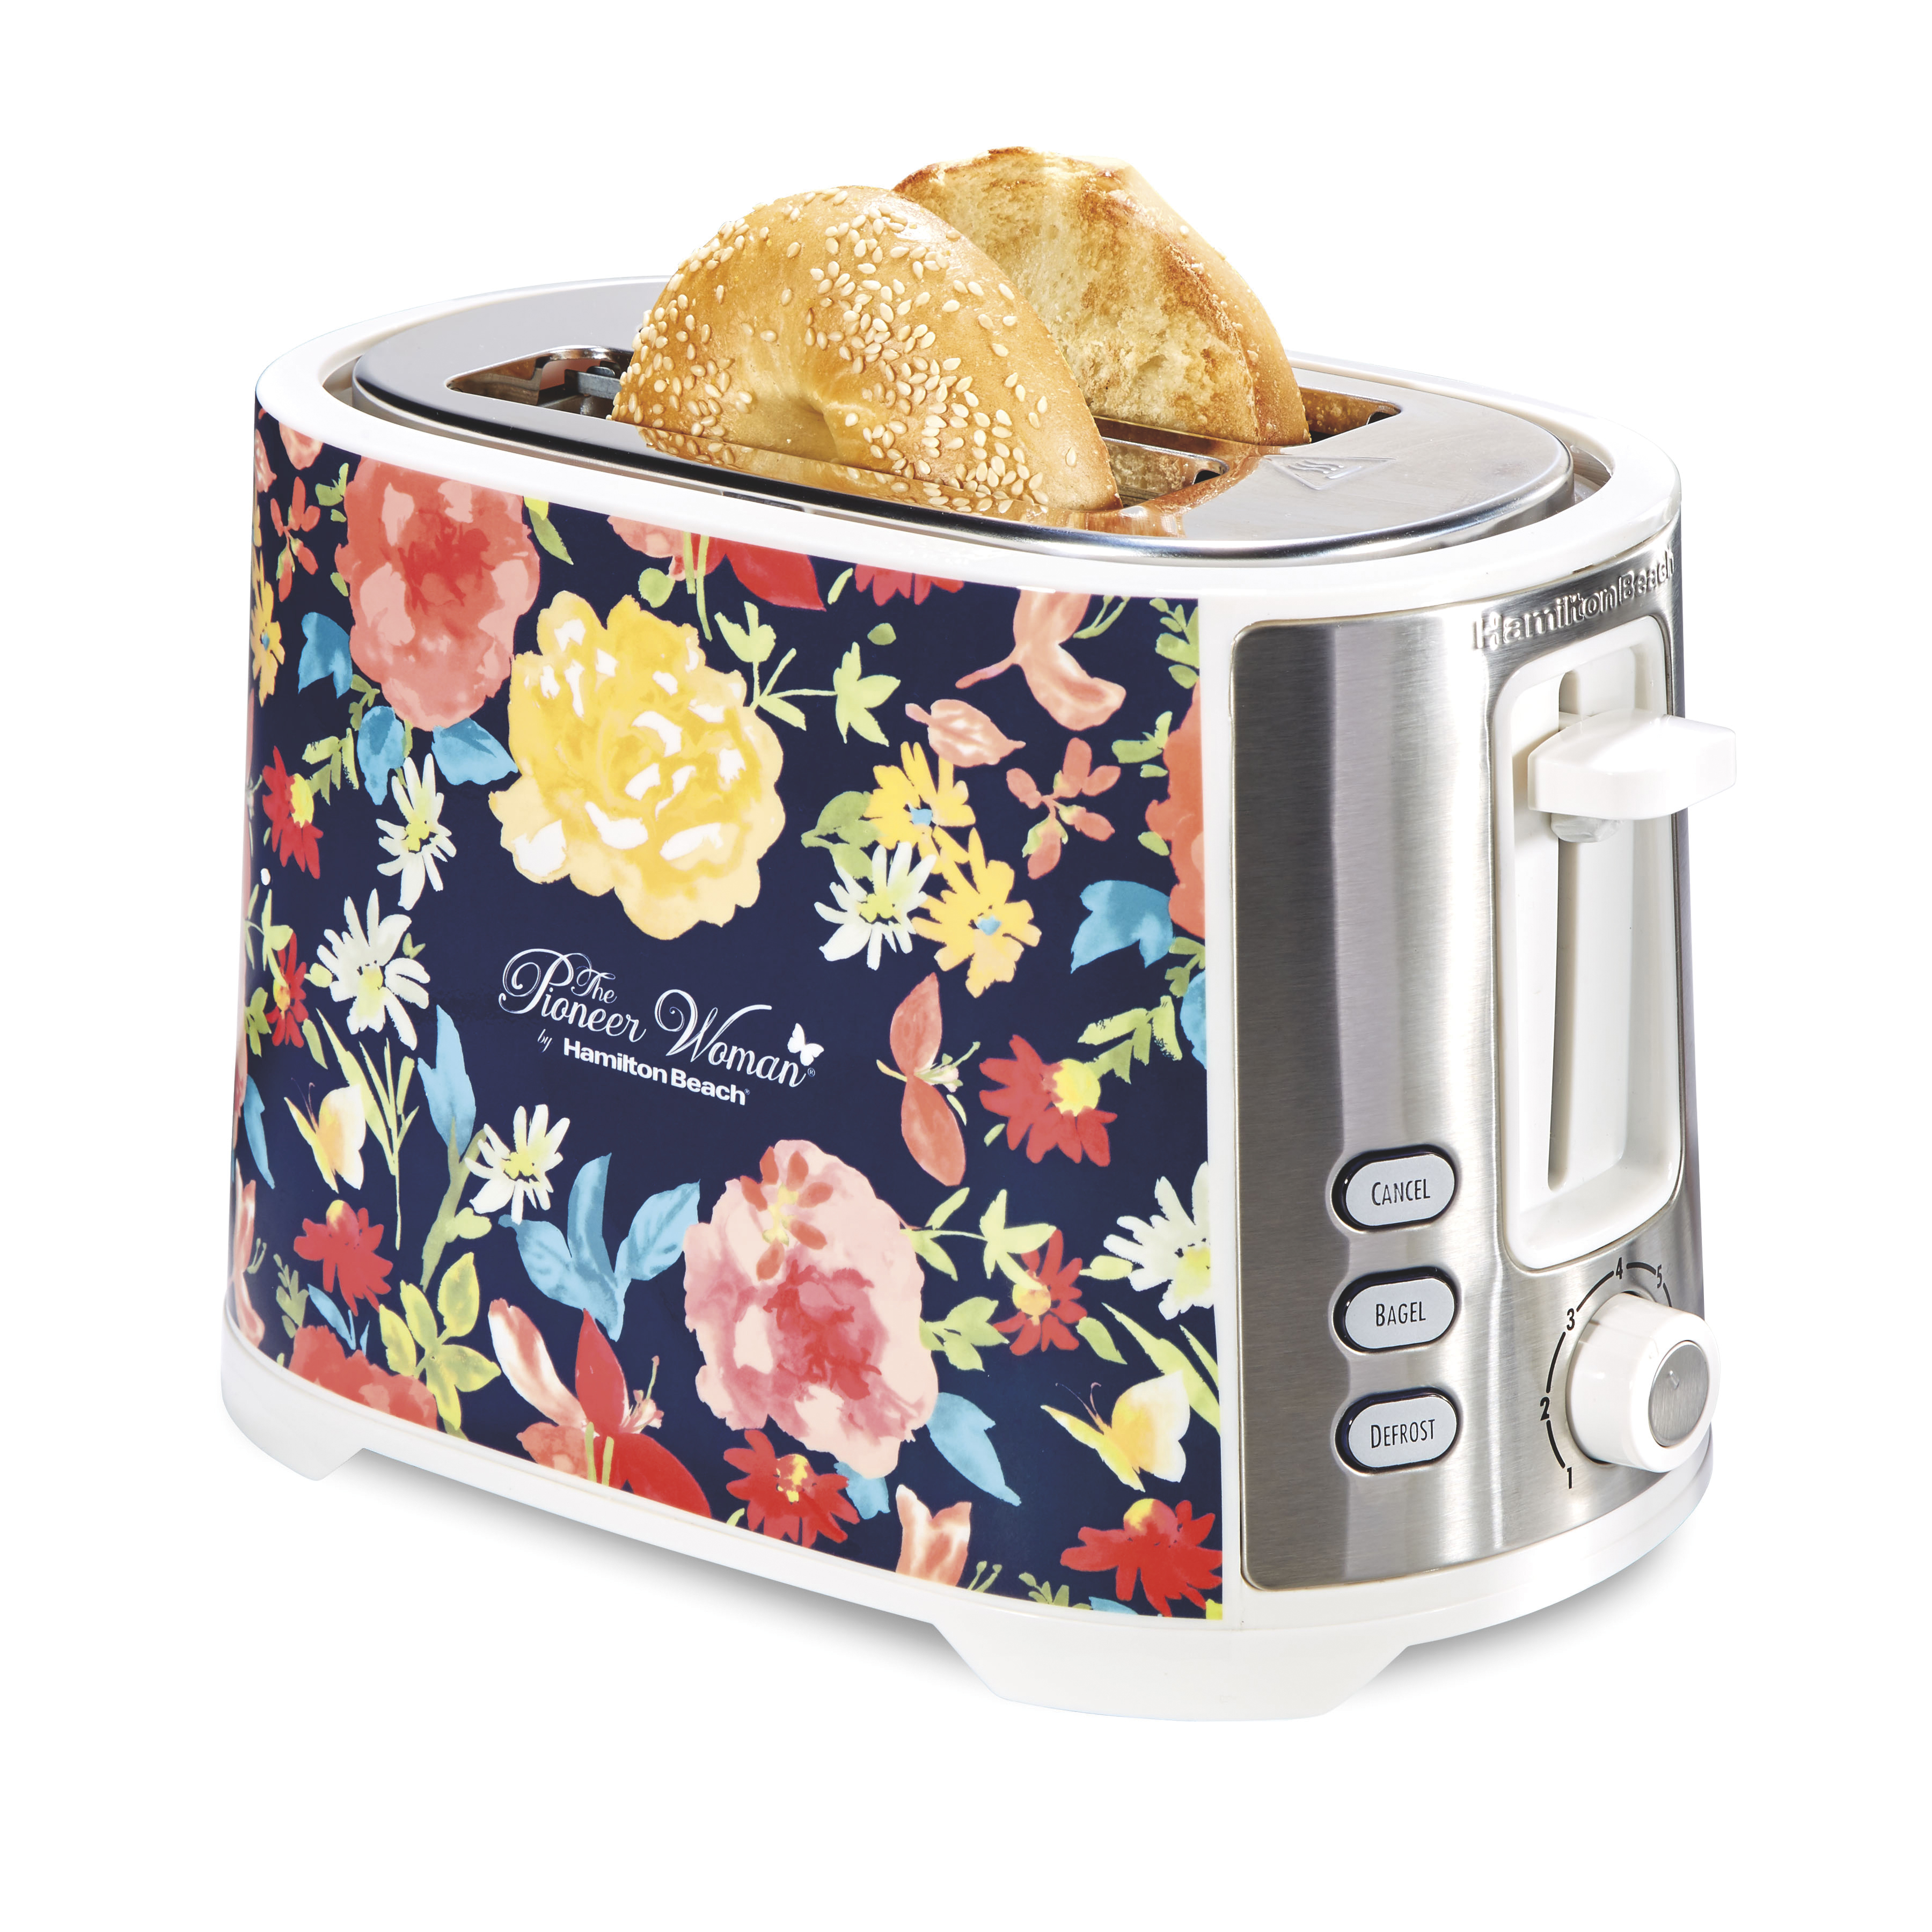 Pioneer Woman Extra-Wide Slot 2 Slice Toaster Fiona Floral | Model# 22638 by Hamilton Beach